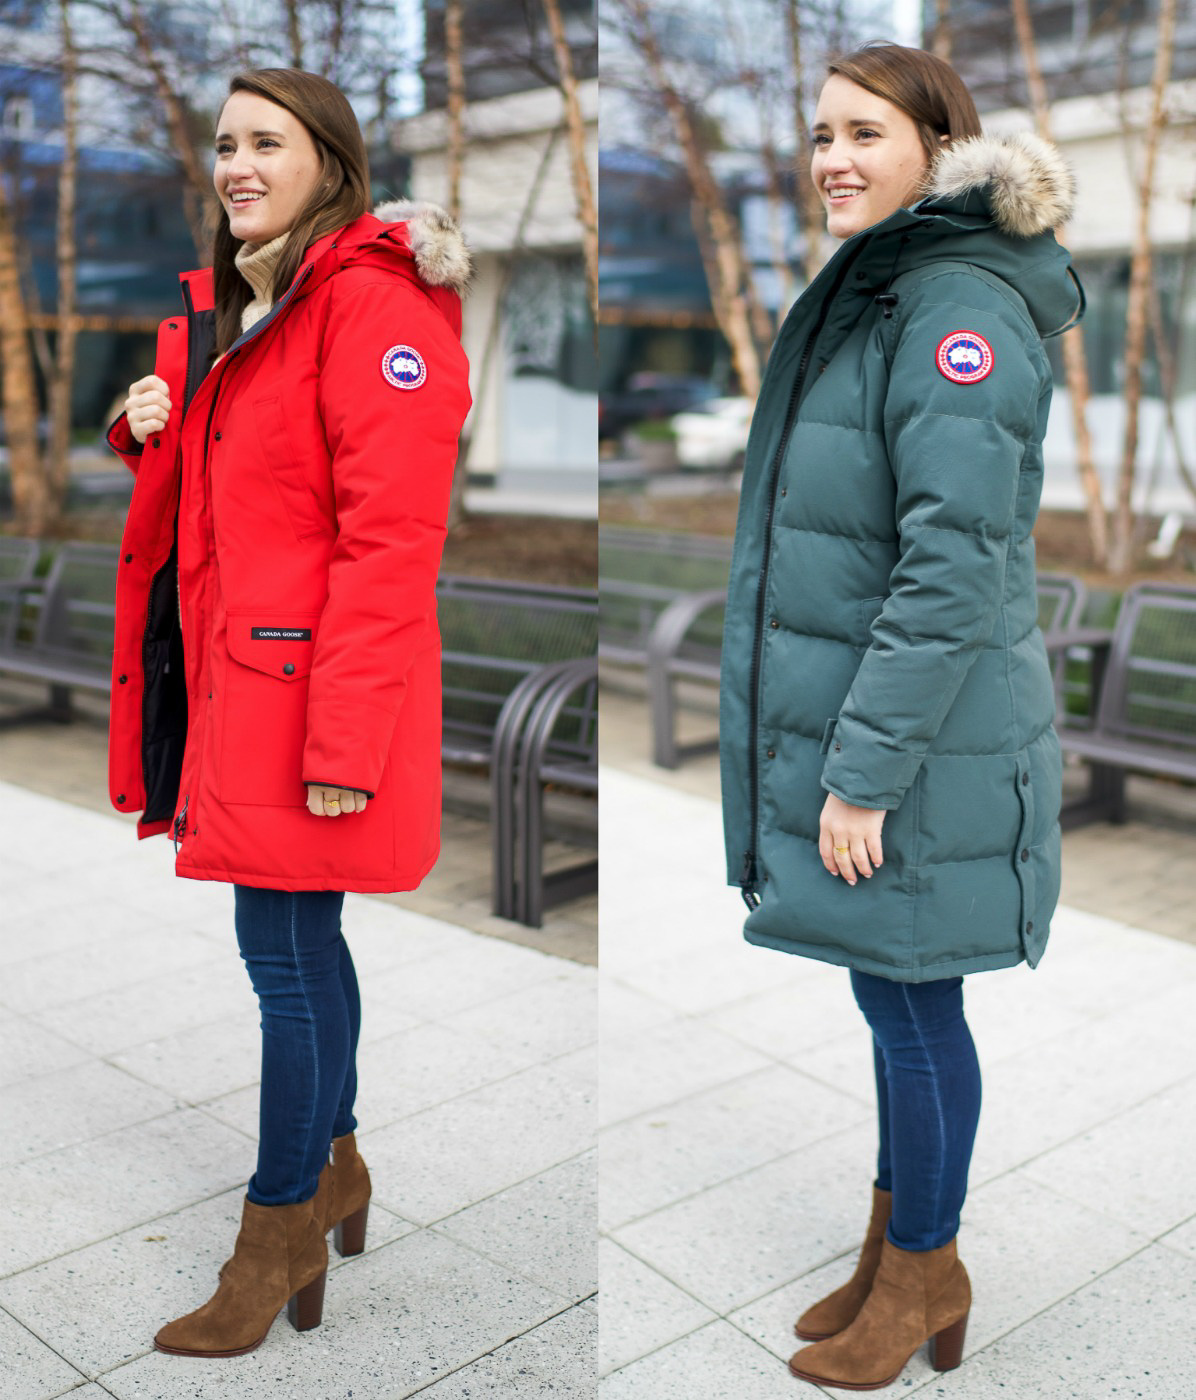 canada goose jackets really warm